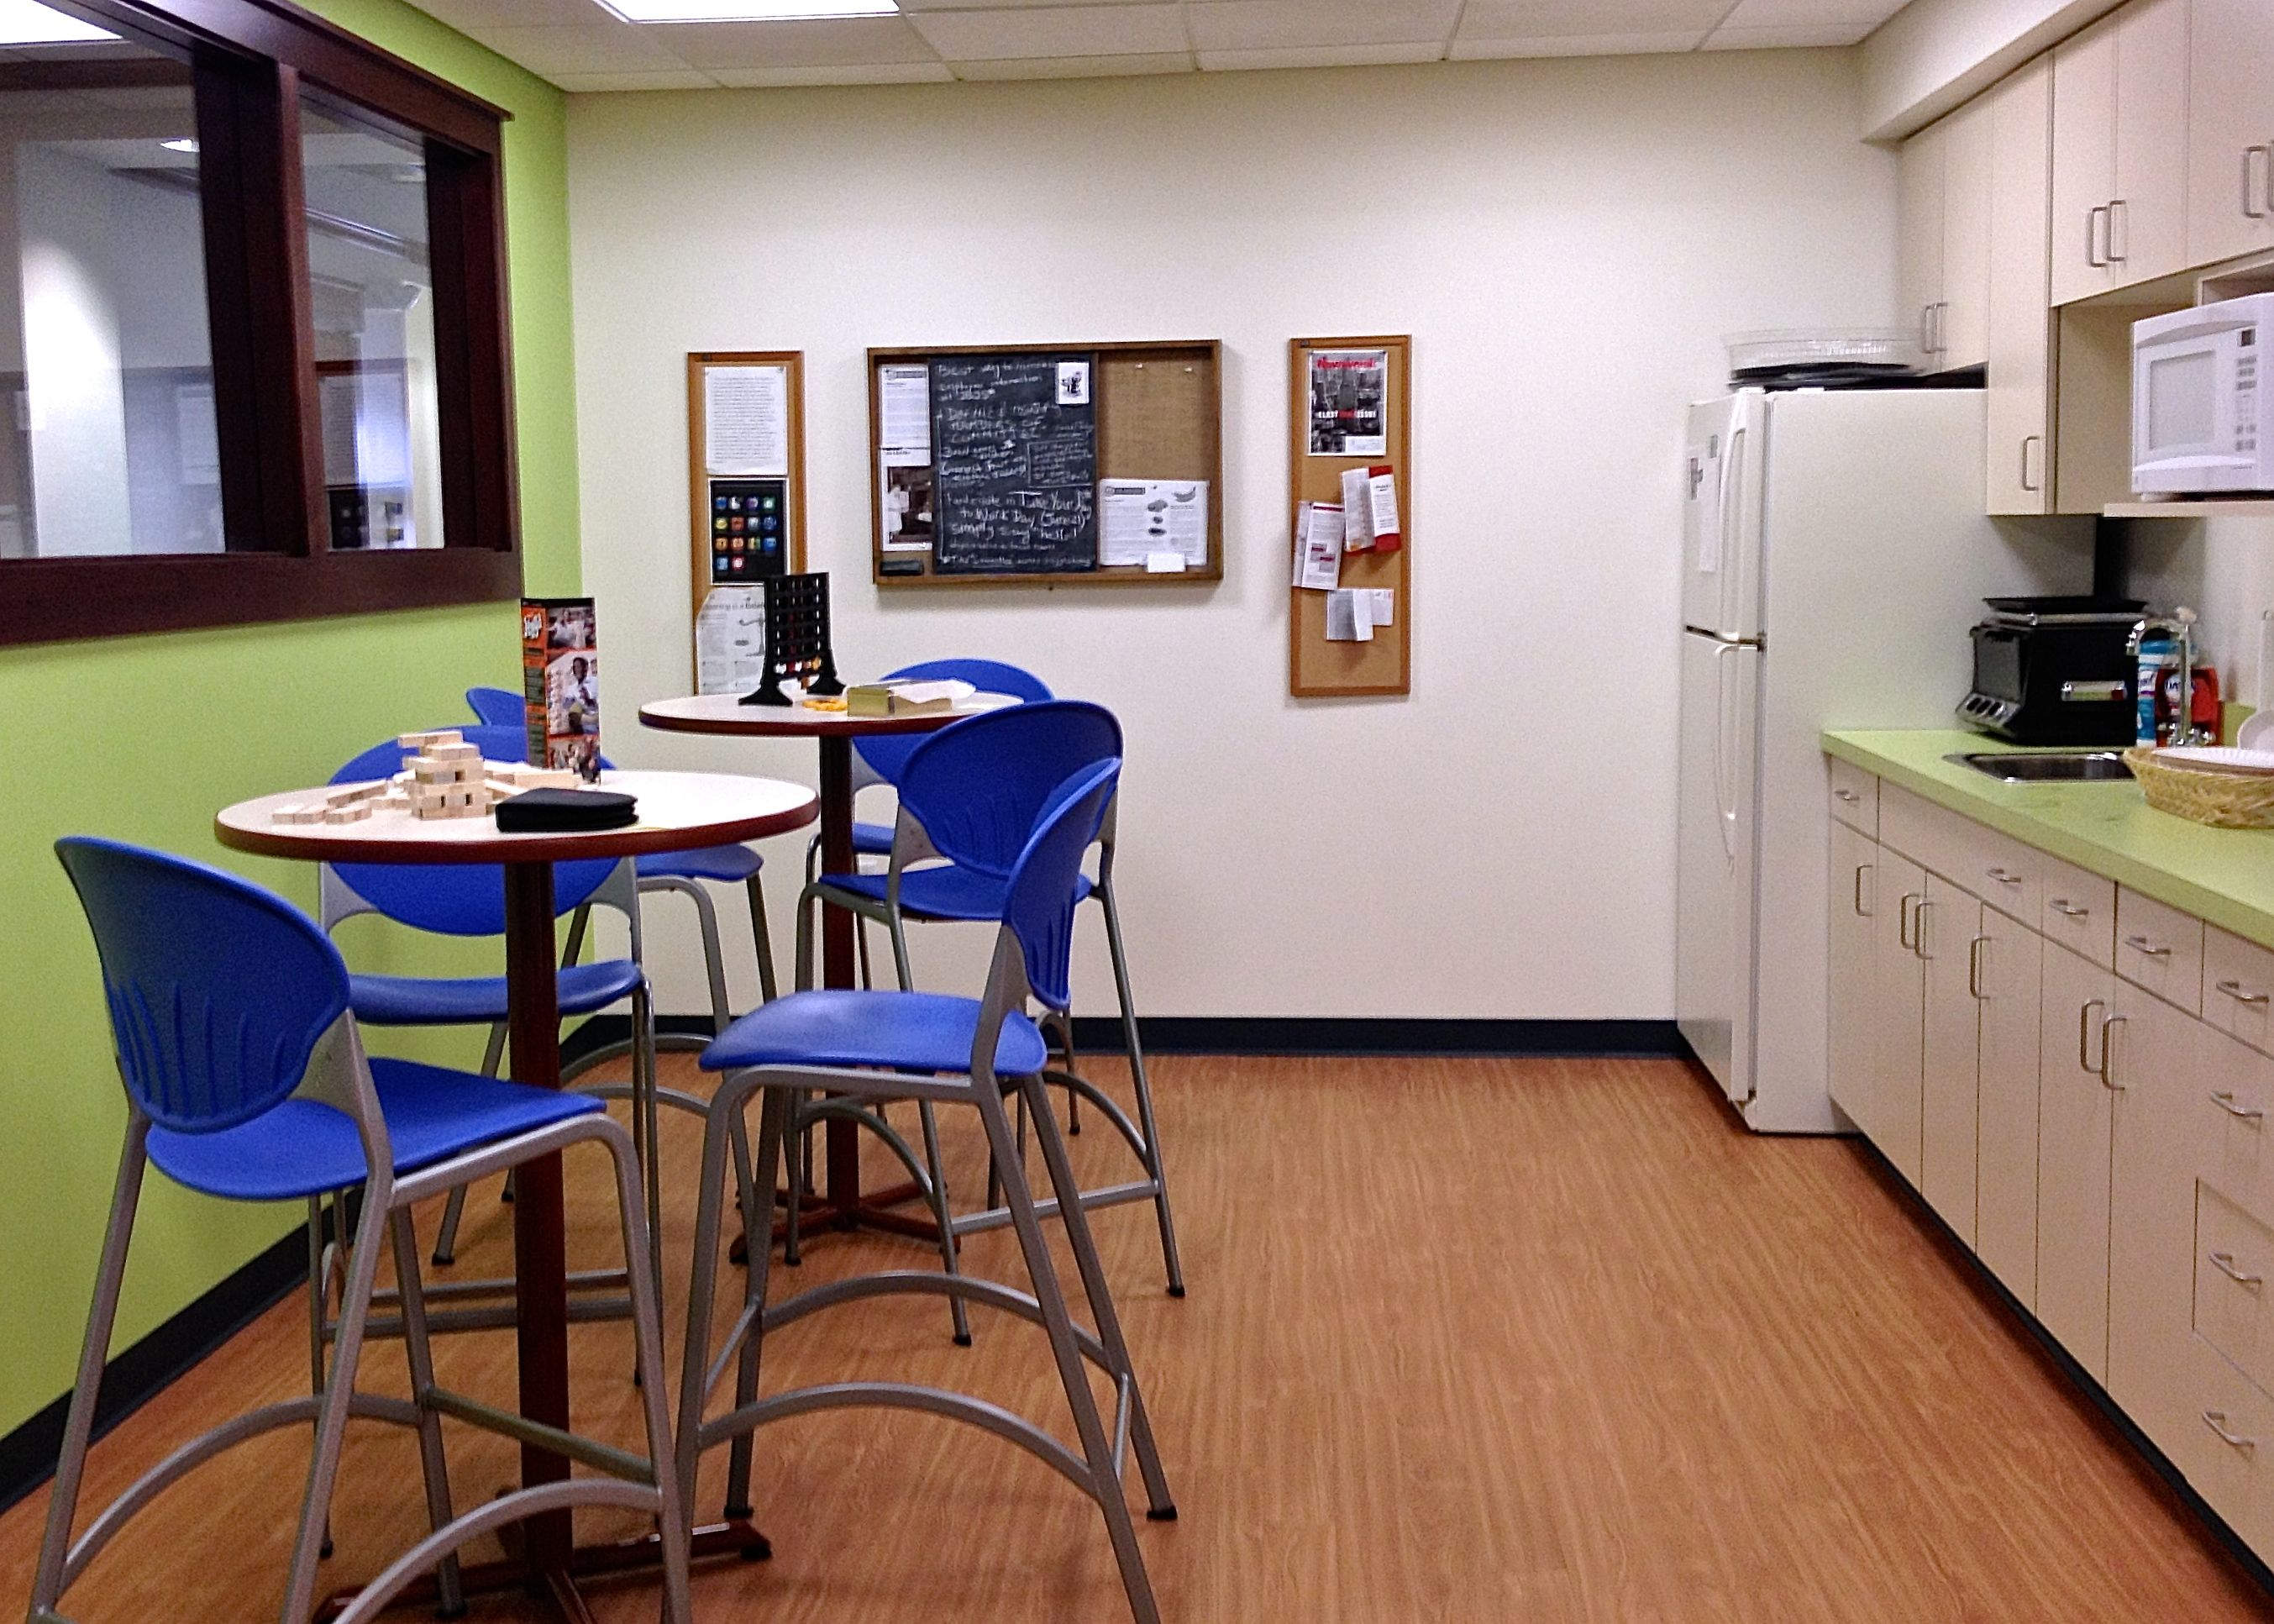 Lunch Room Chairs Stool Chair With Armrest Immaculate Blue High Armless Stools And Small Pedestal